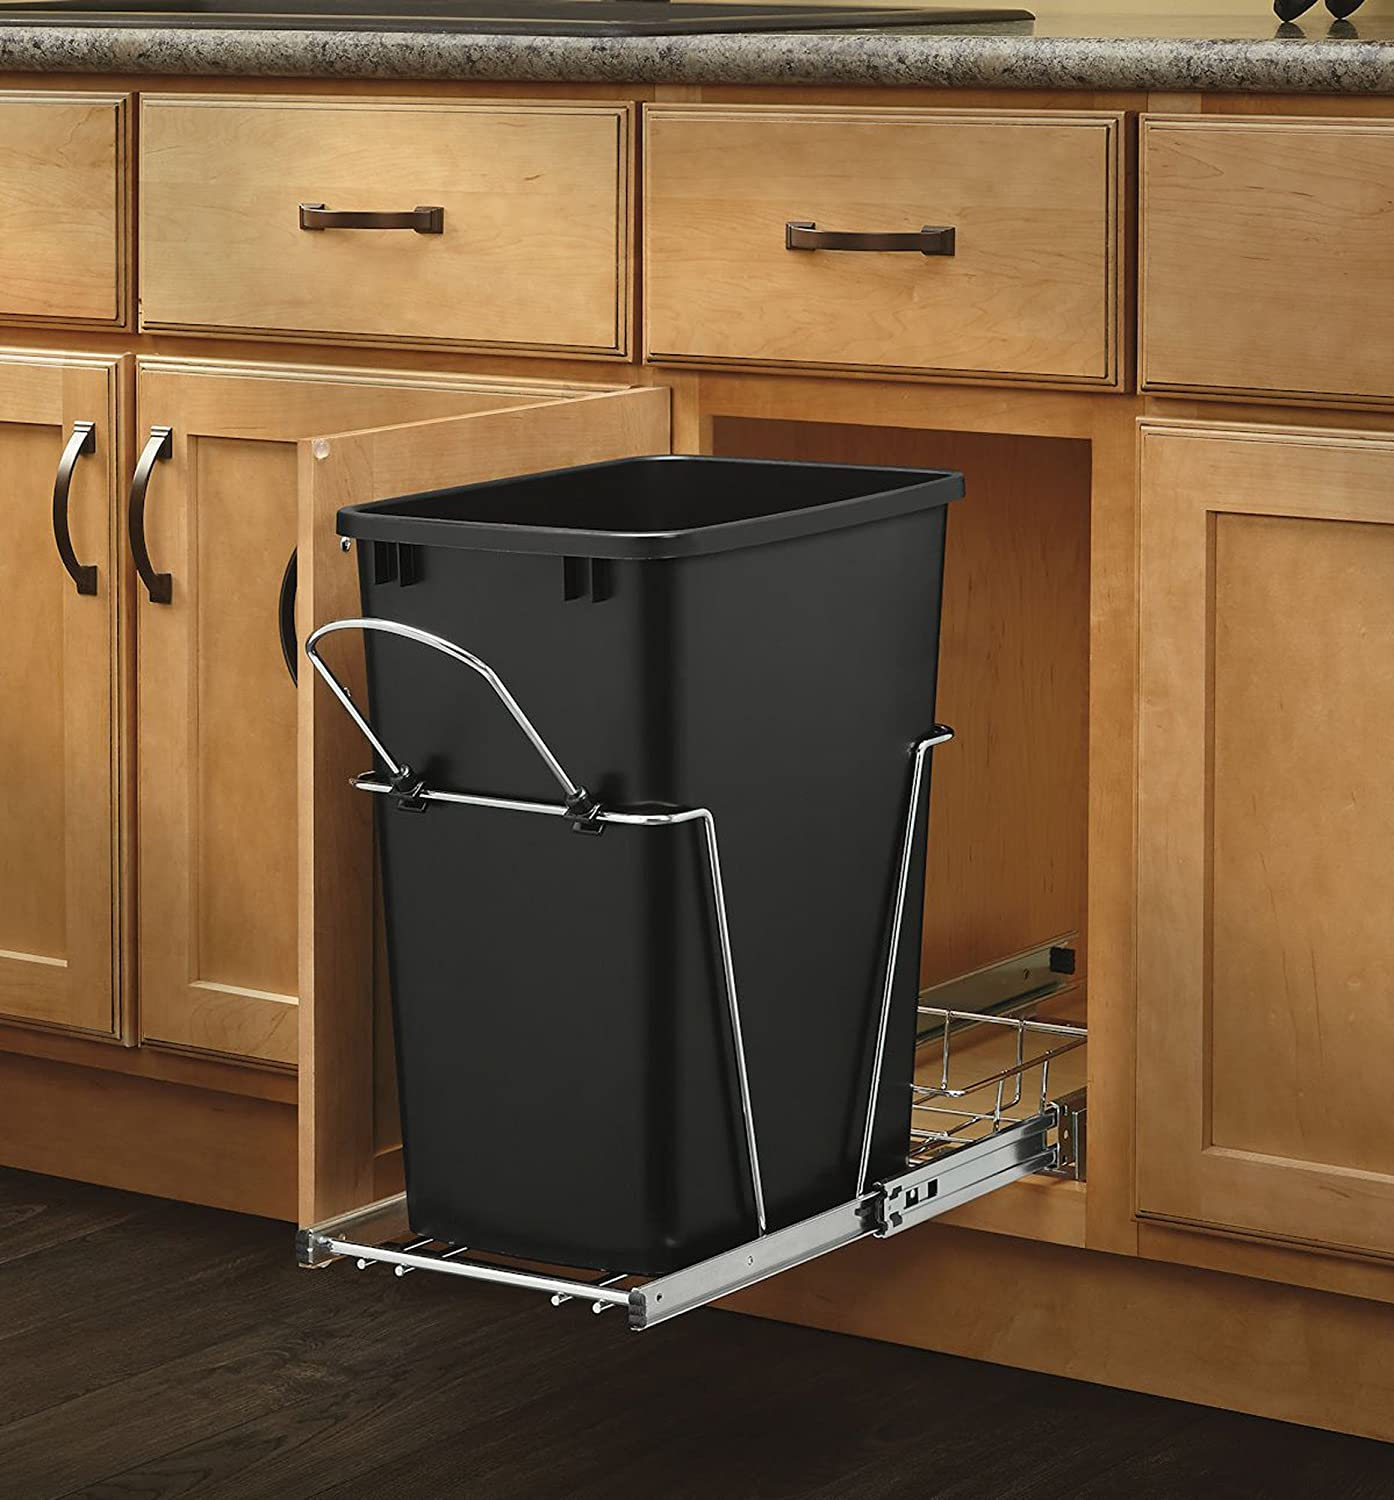 amazoncom revashelf rv12kd18c s single 35 qt pullout black and chrome waste container with rear basket home u0026 kitchen